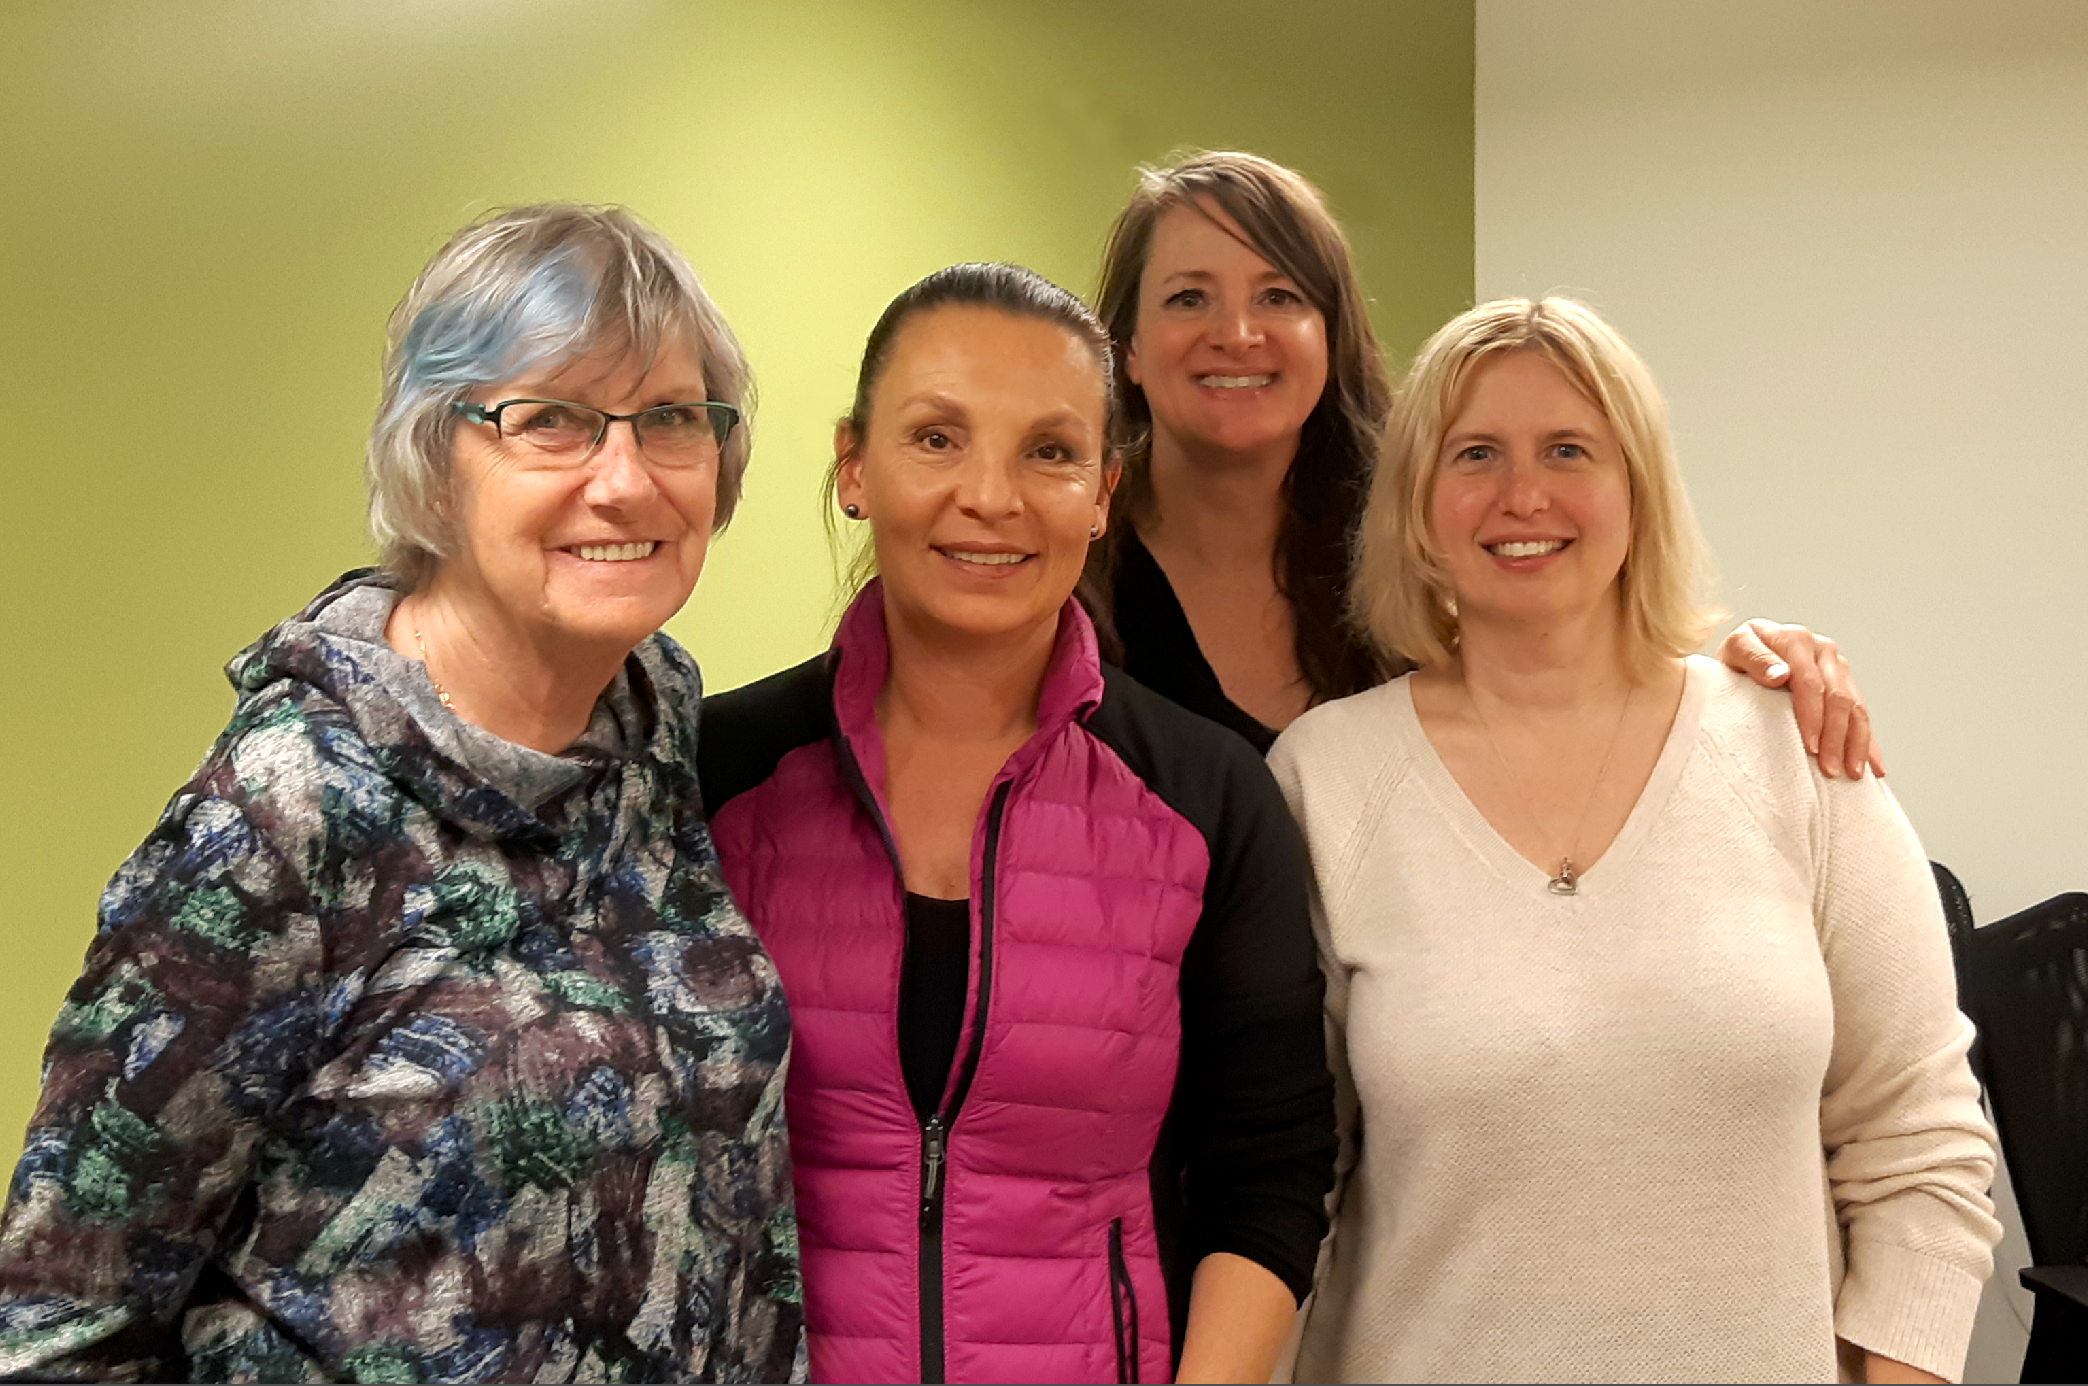 Voted in from left to right: Lilian Elliott, Director; Robbin Whachell, President; Lani Lehun, Director; and Sandra Uno, Director. The four join the existing executive already serving terms: Rodney Lee, Vice President & Hatchery Manager; Emily Rossi, Secretary; and Kyle Uno, Treasurer.